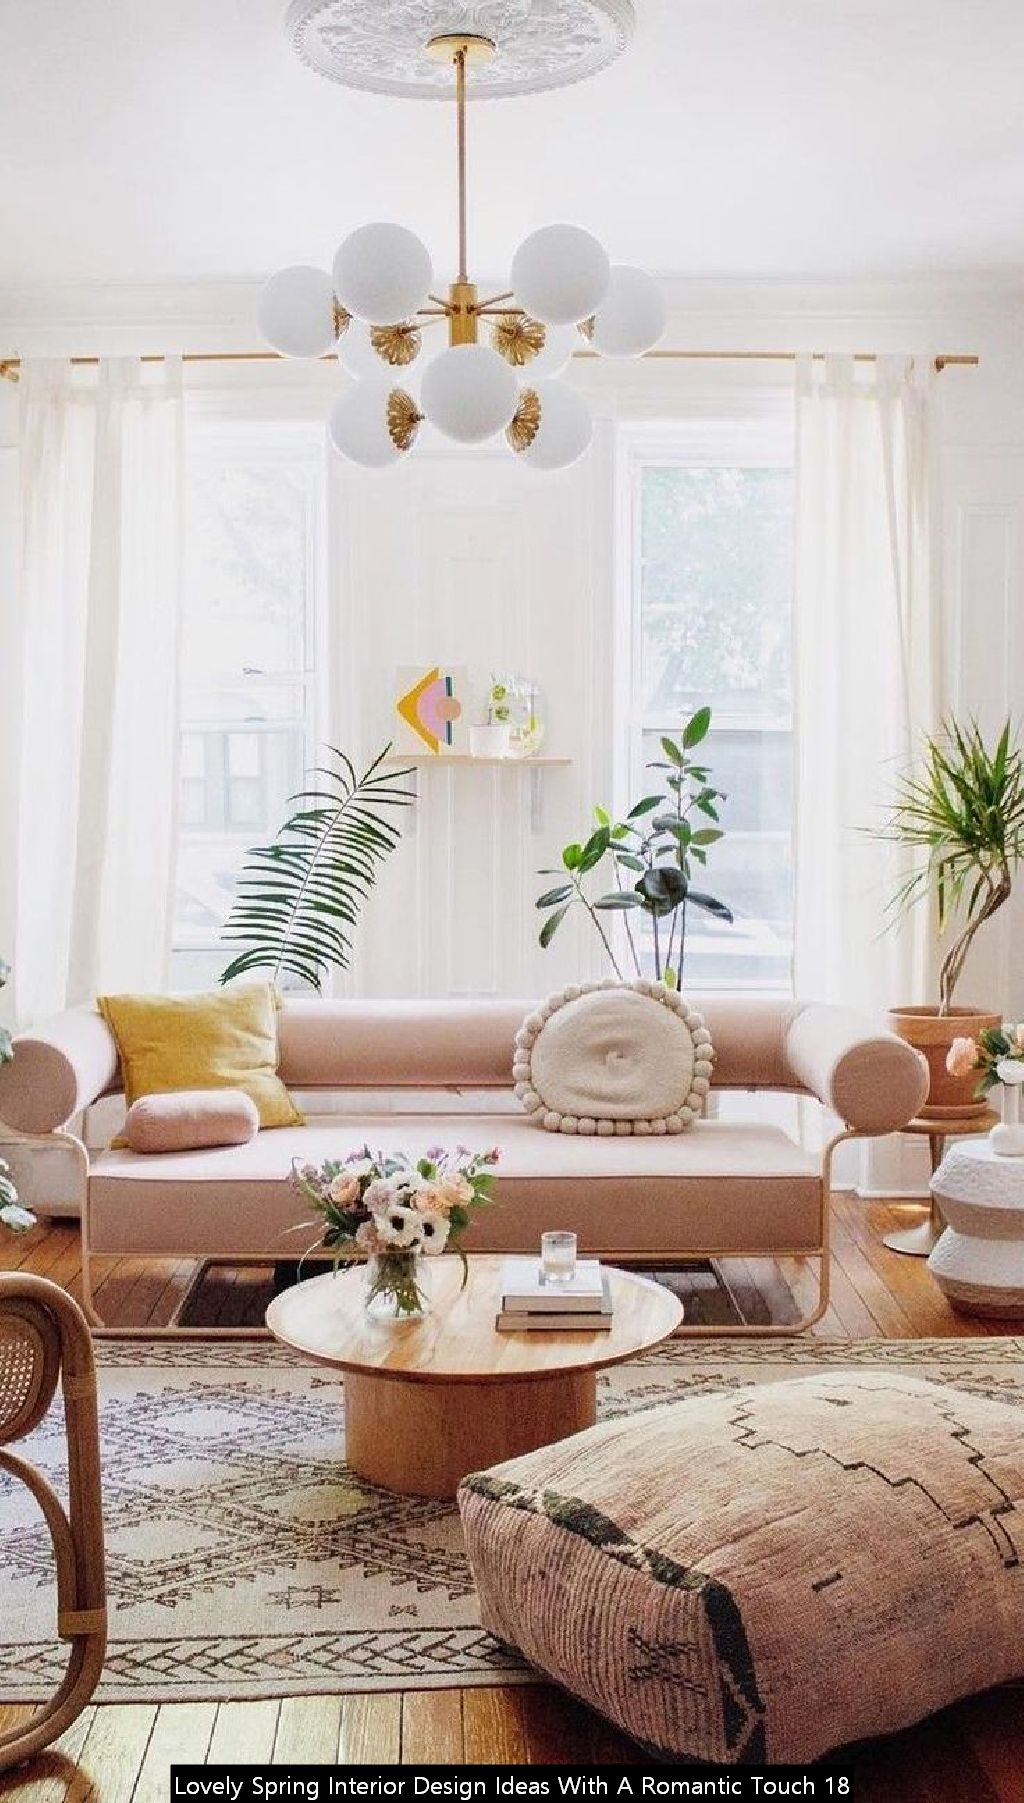 Lovely Spring Interior Design Ideas With A Romantic Touch 18